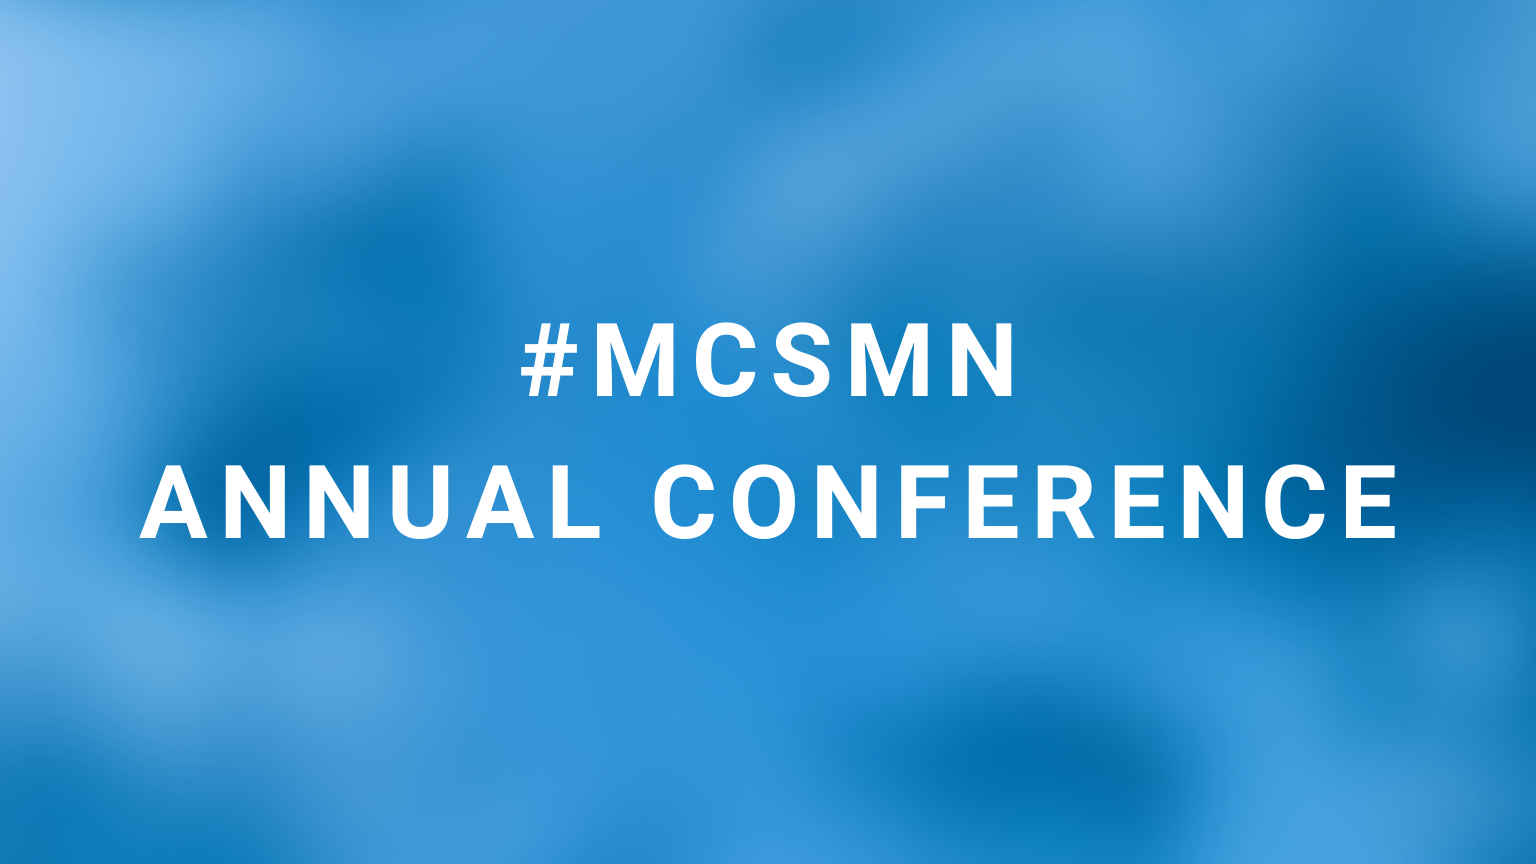 MCSMN Annual Conference